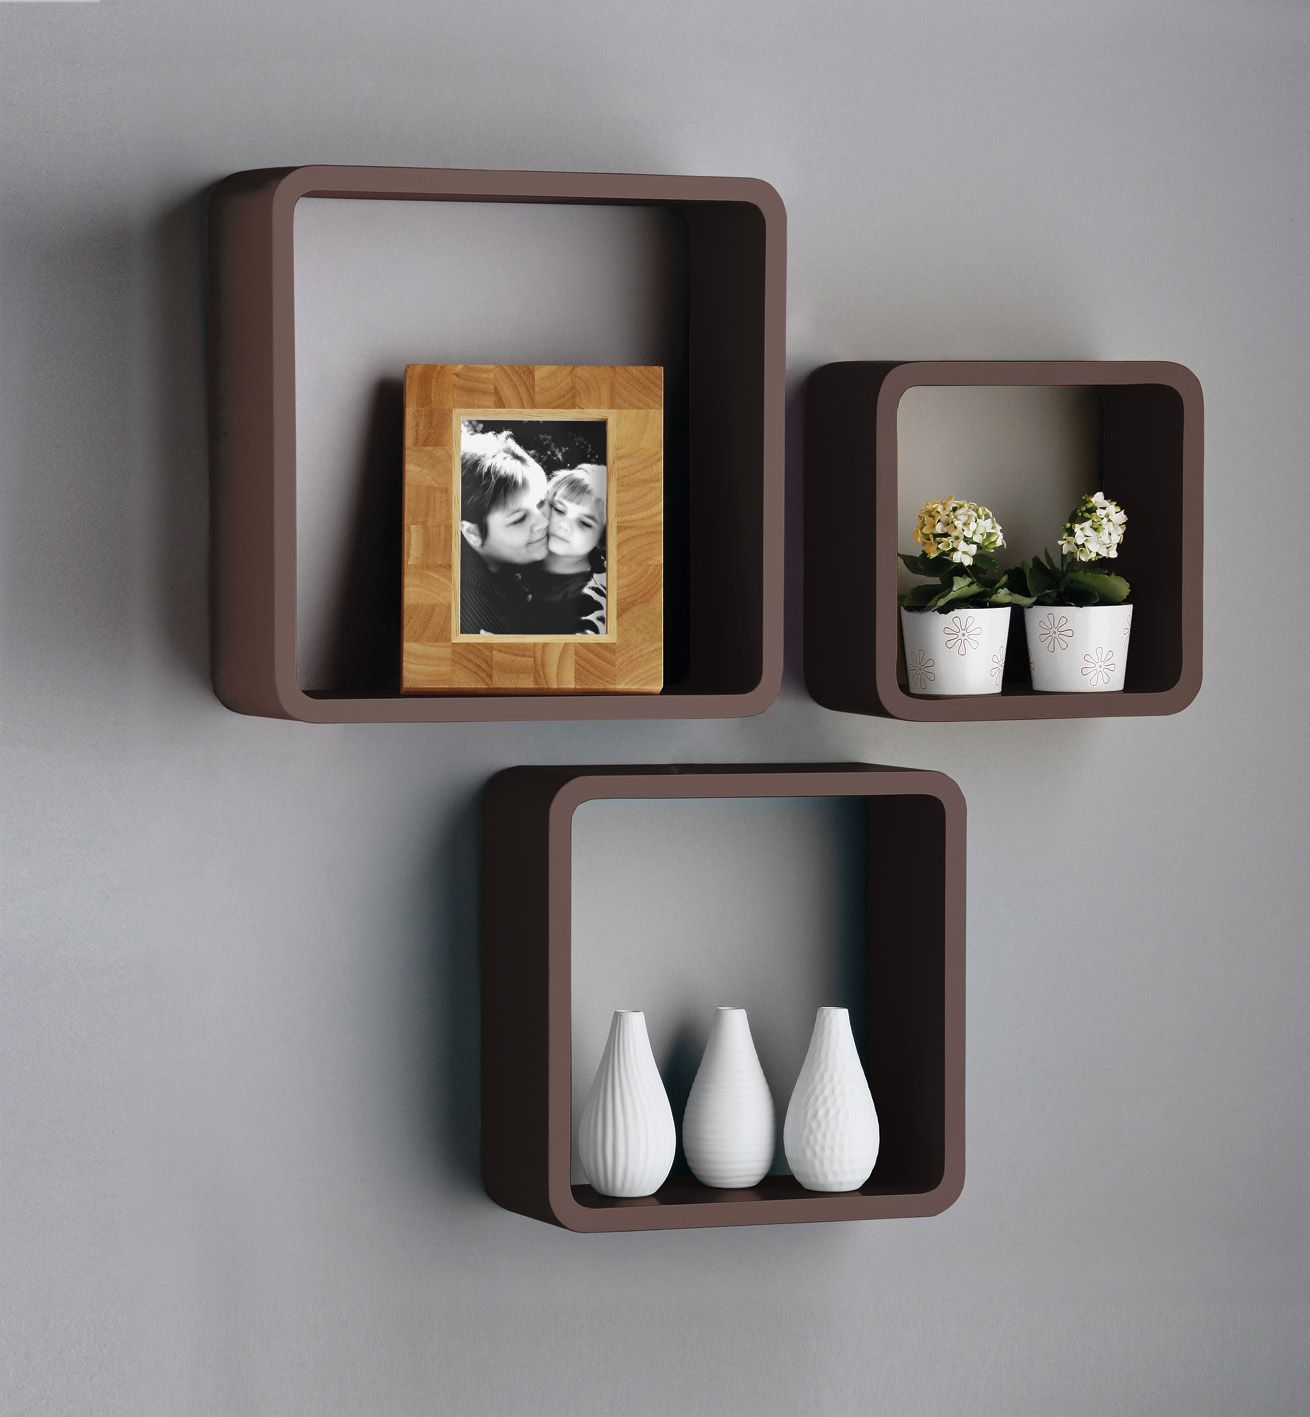 Melannco Floating Shelves Square Box Floating Shelf  Home Decor  Pinterest  Shelves